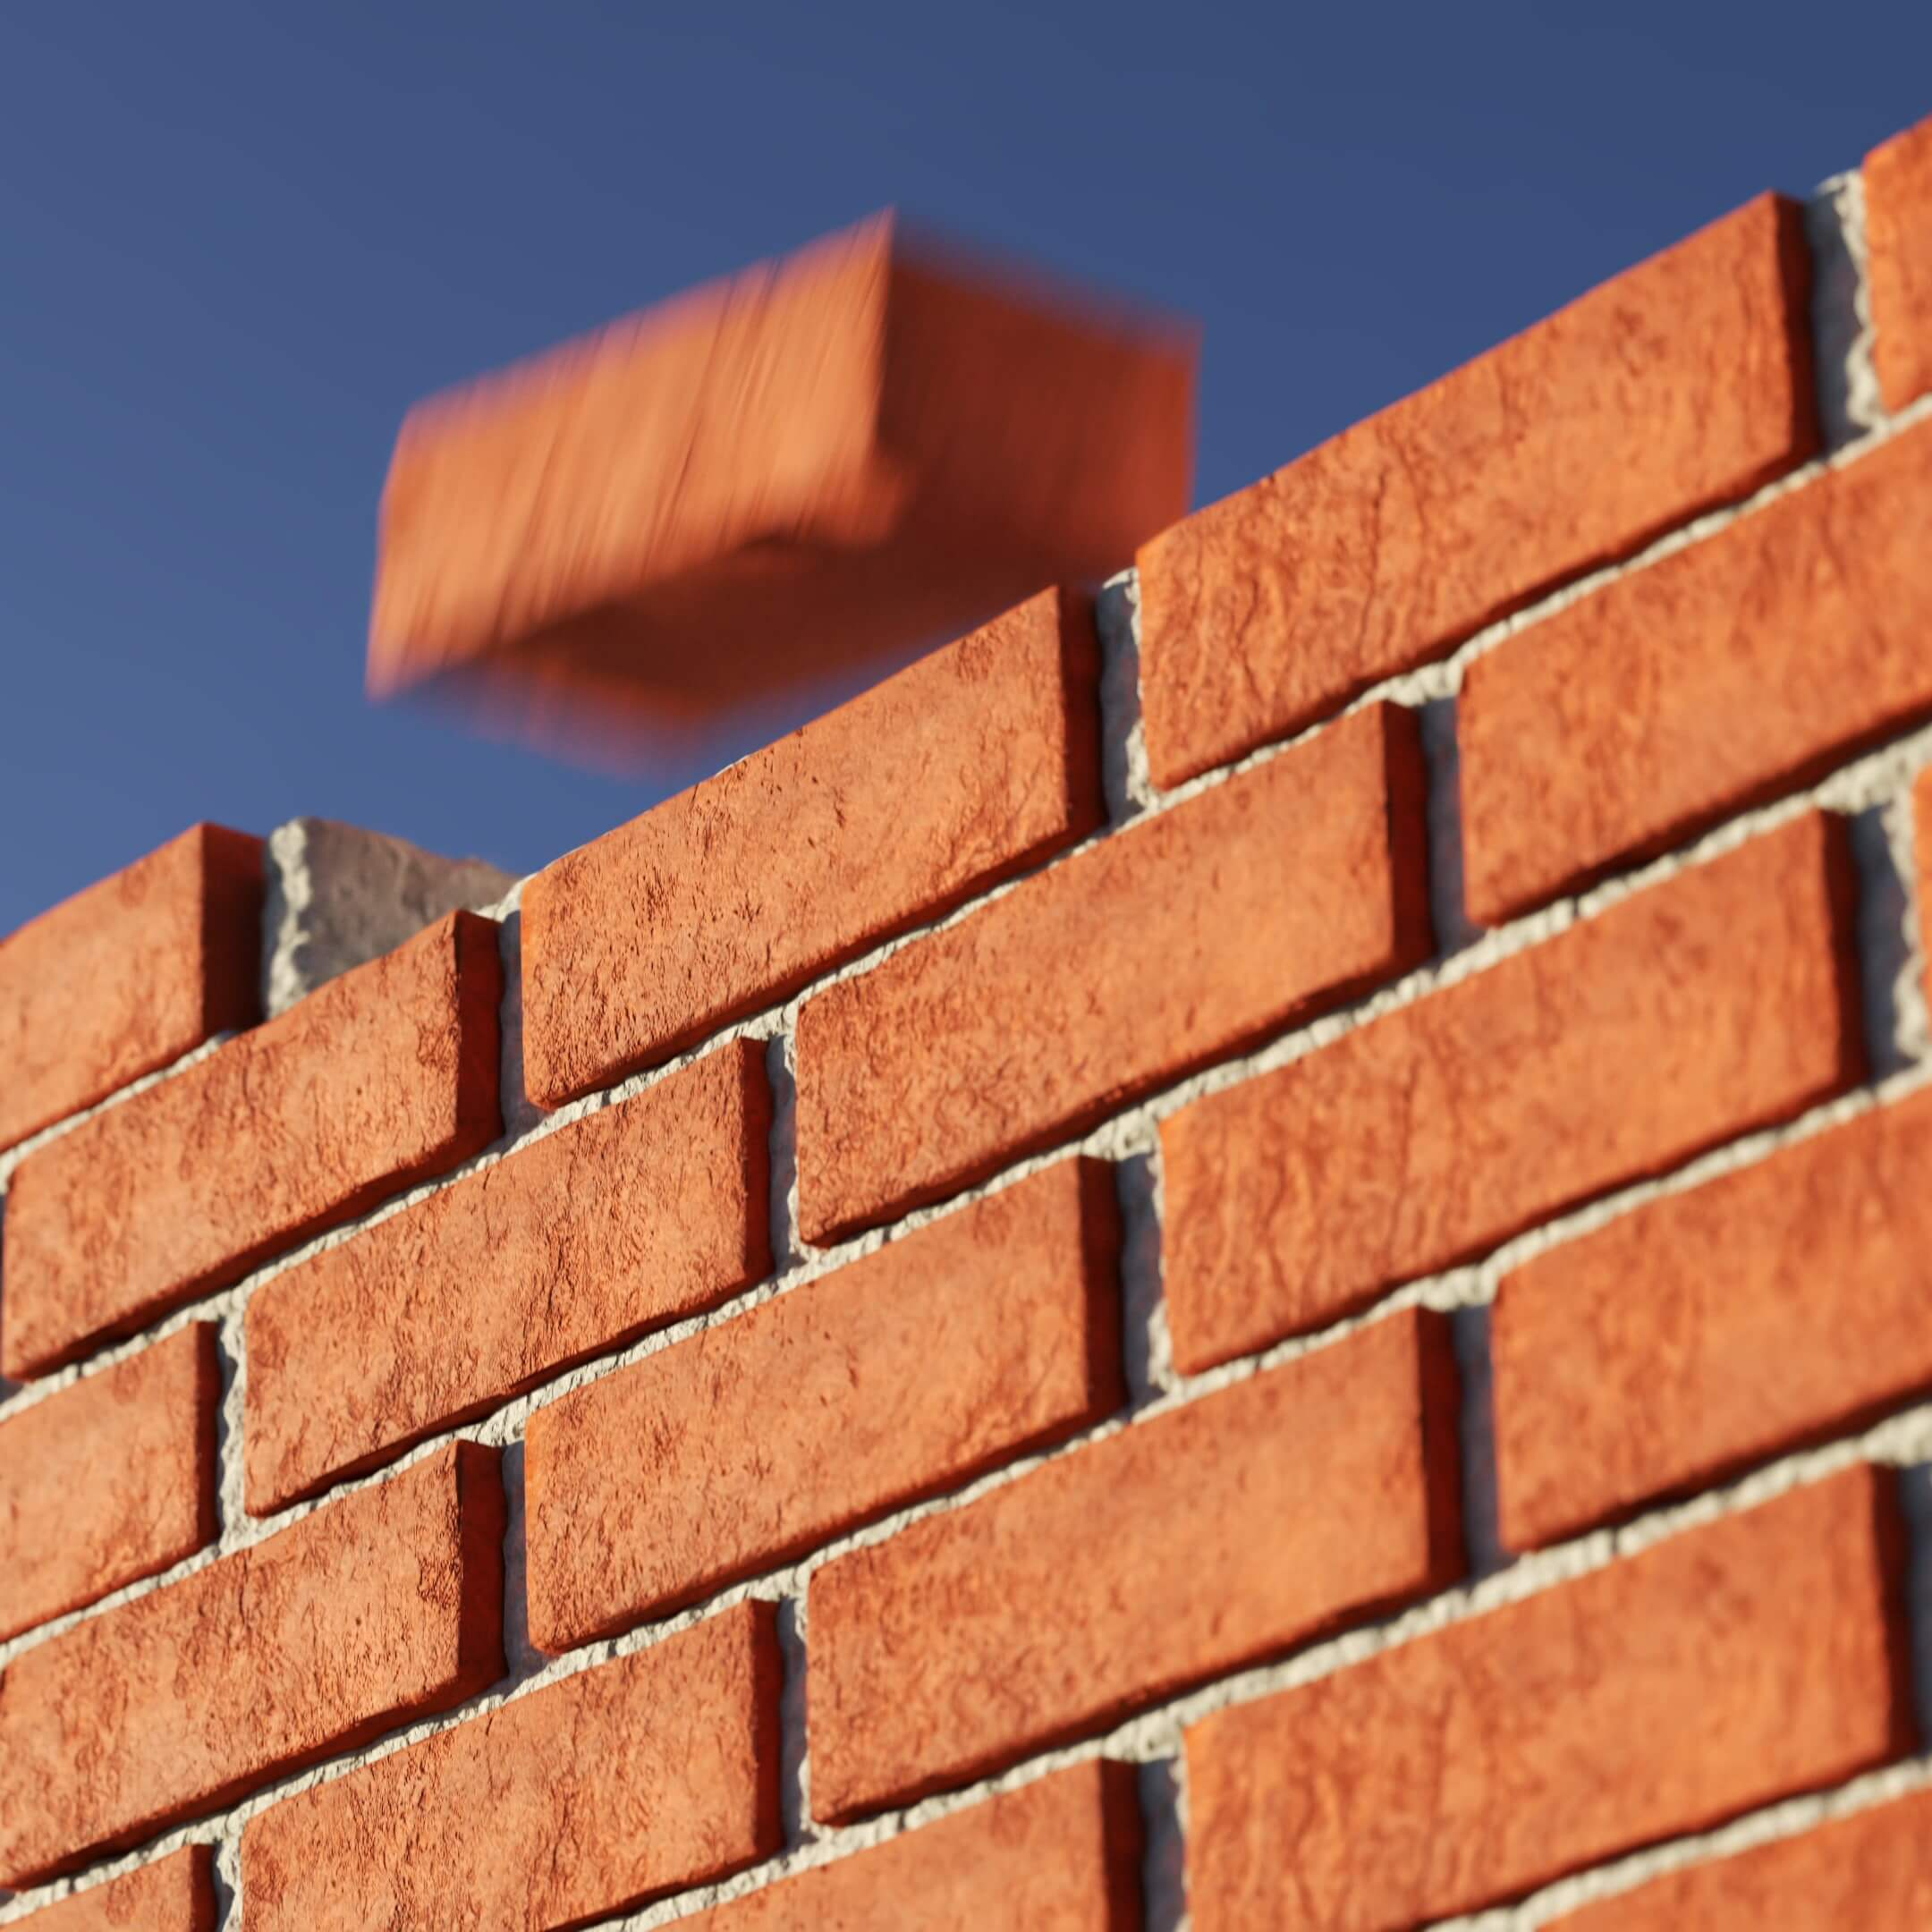 t2 Clay Brick Supplier in UK- vripl.in